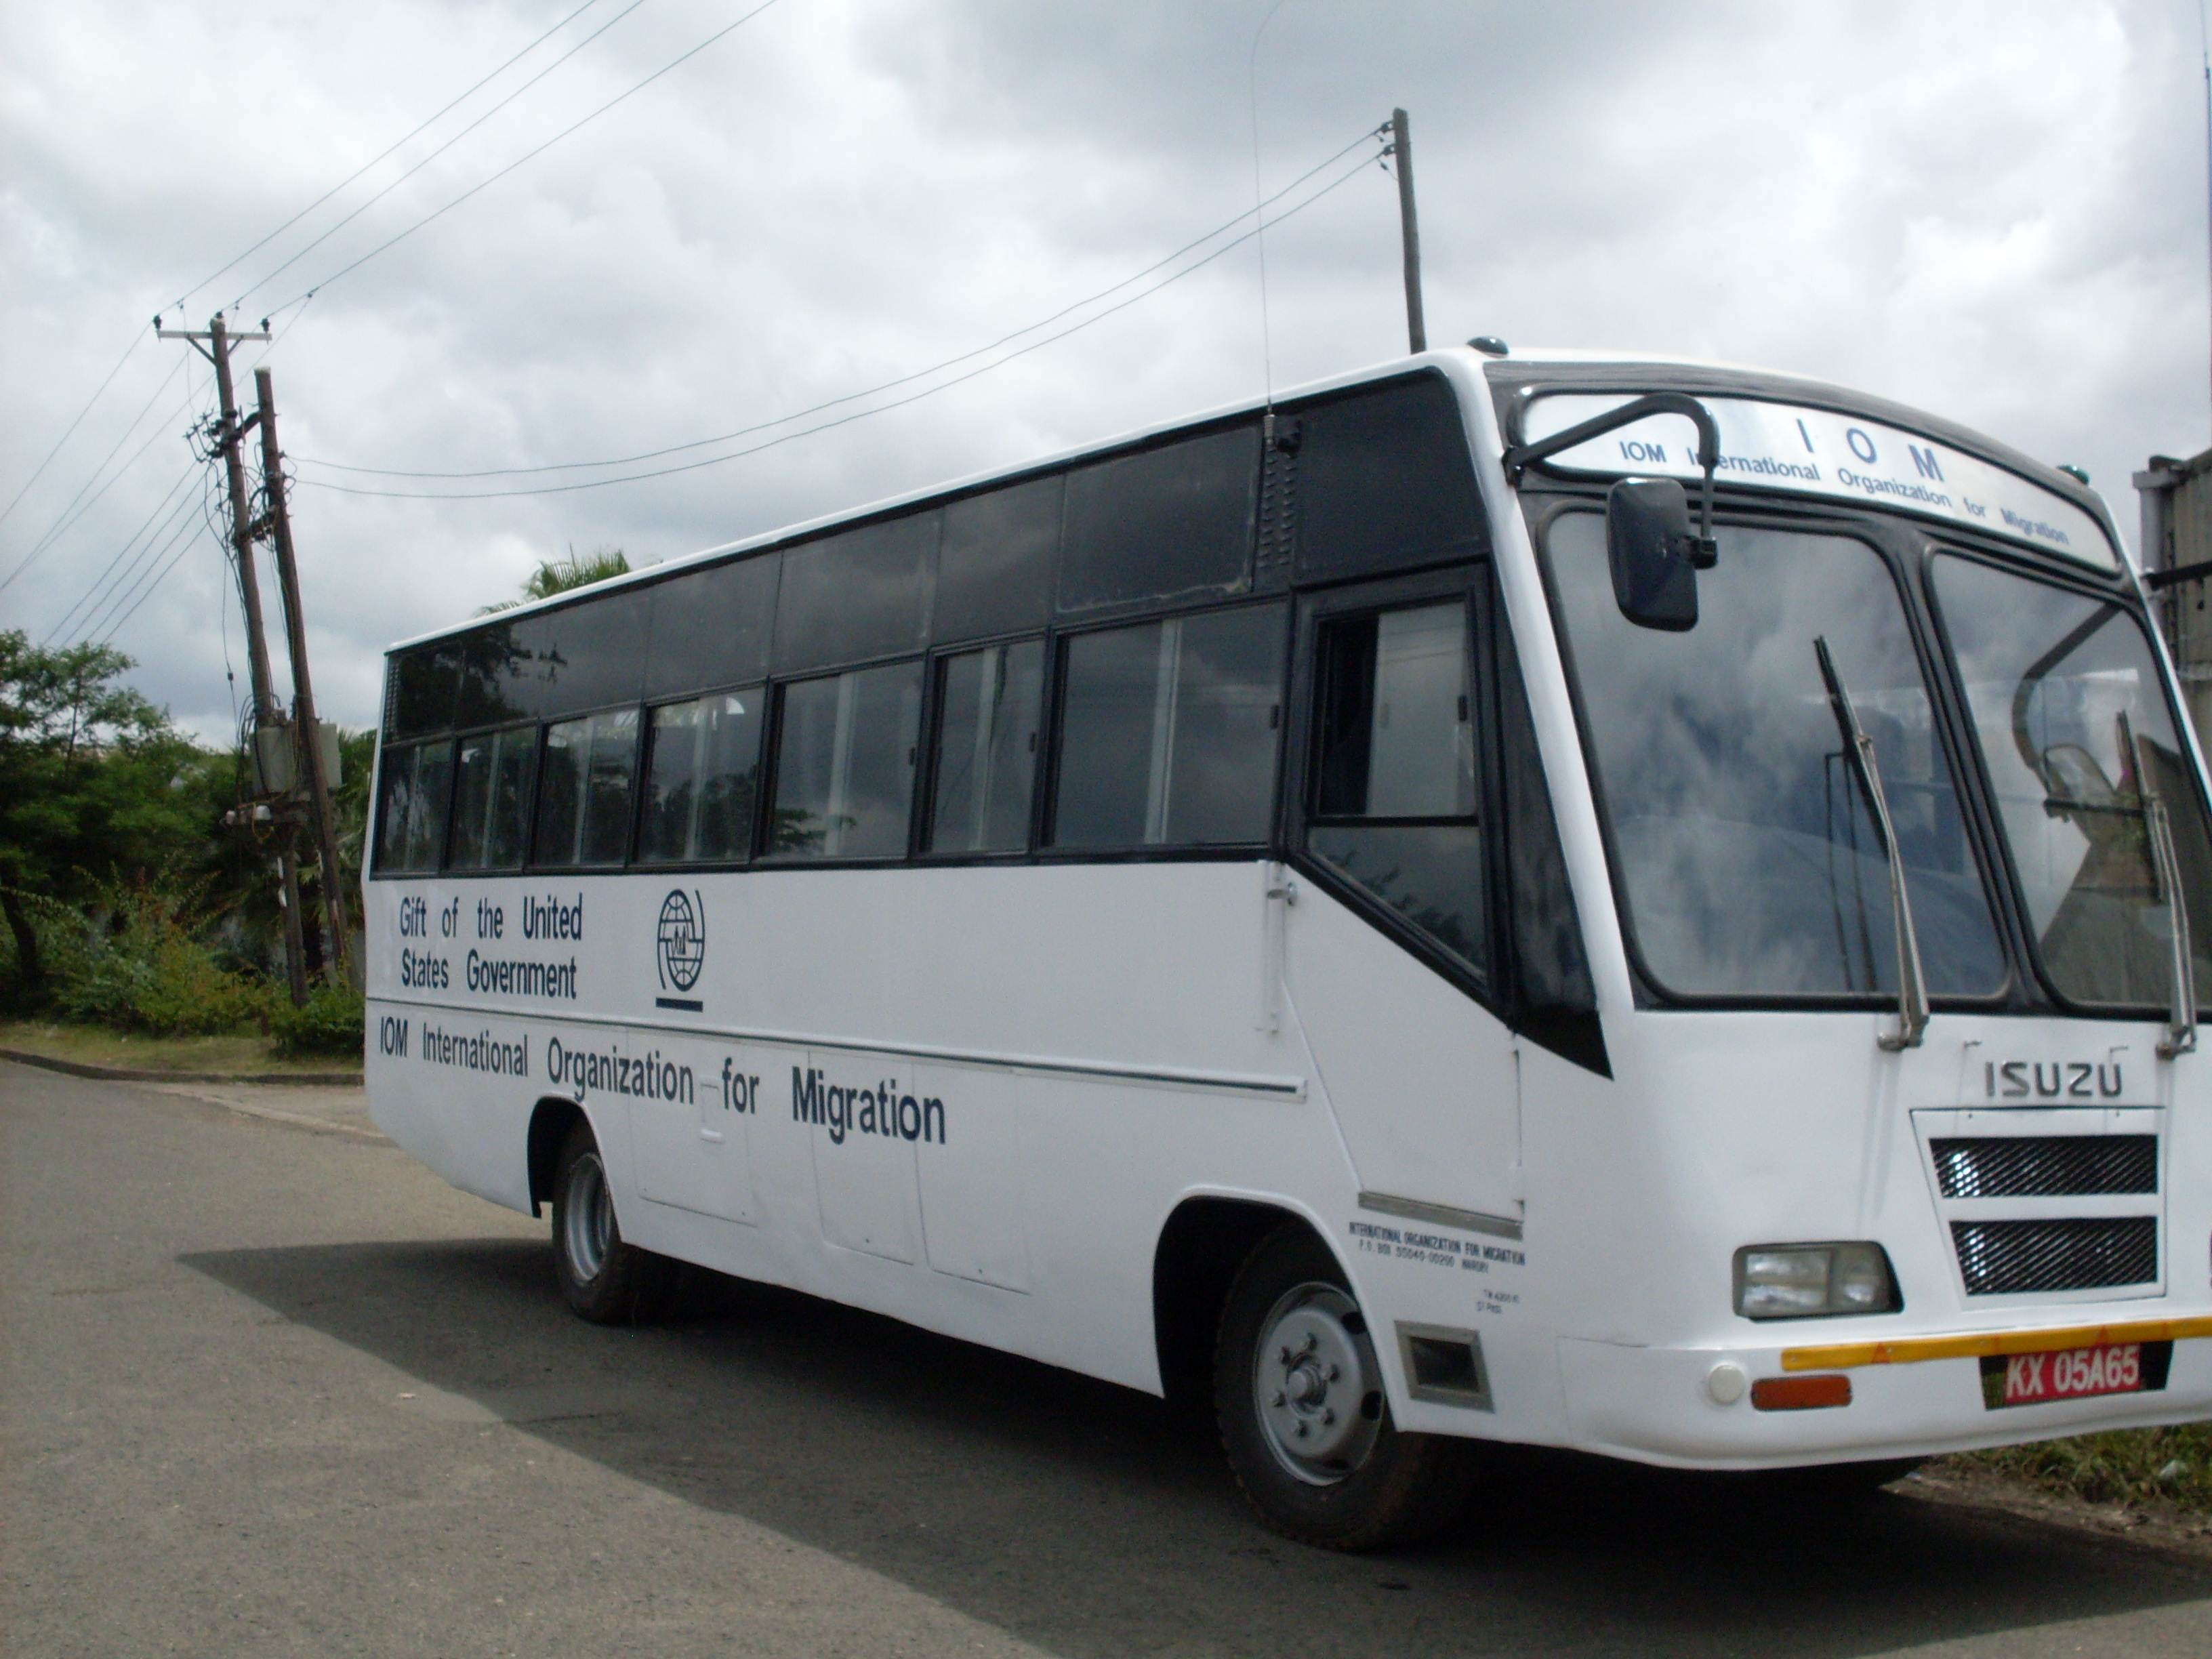 Institutional Bus Malvabus